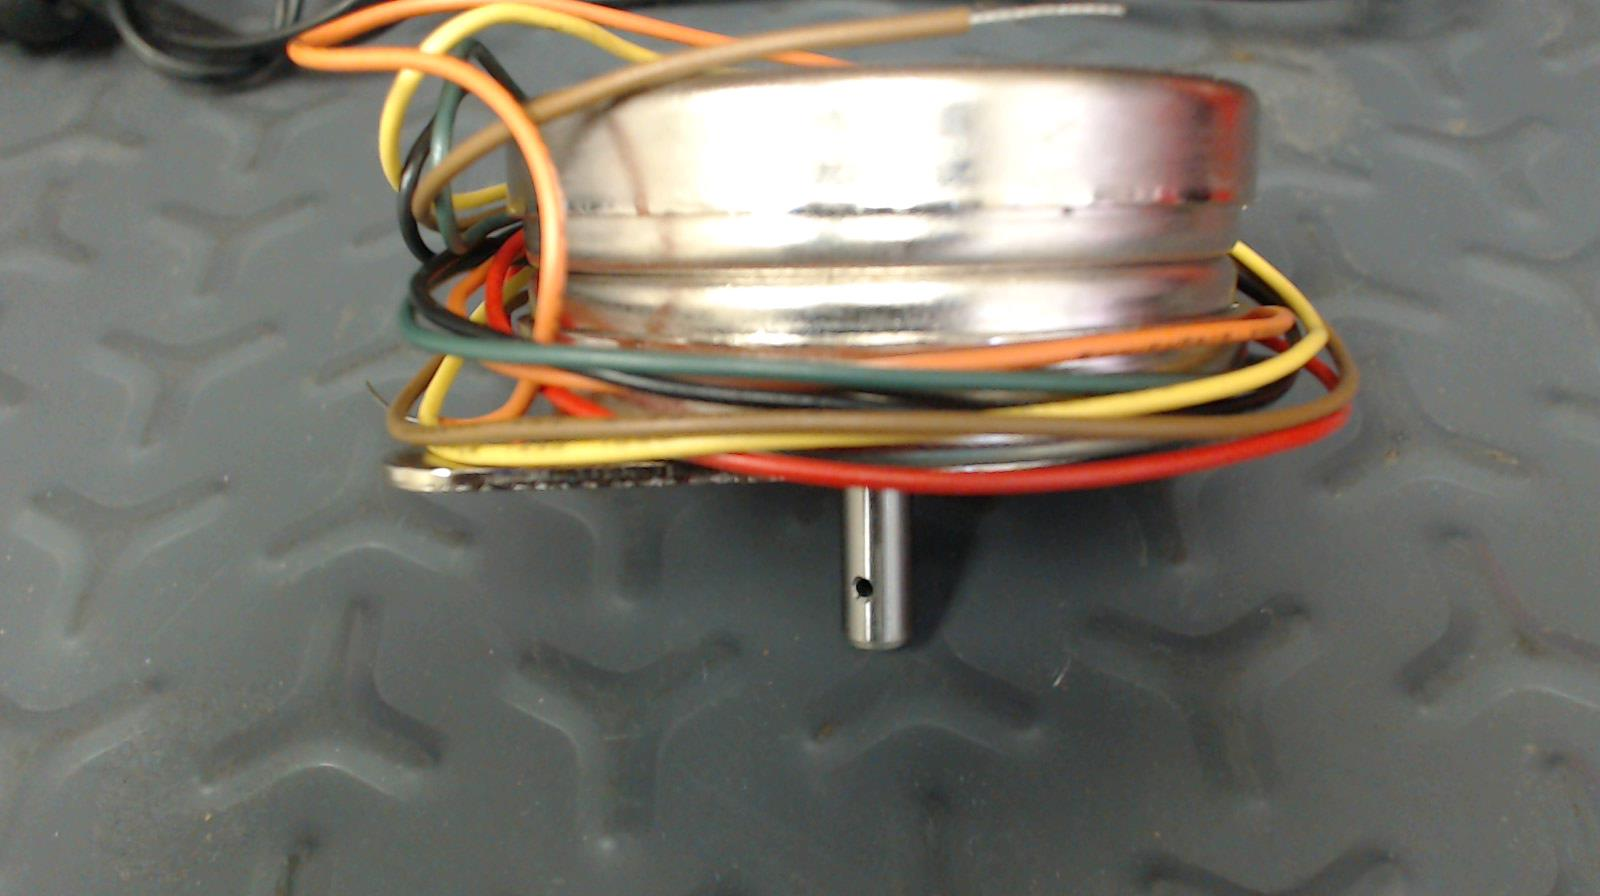 0122 0590 3 Airpax Spare Parts Xl T 89 Dodge Omni Wiring The Pictures Provided Are For Reference Only Item That You Receive May Not Be Exactly As Pictured Below Click On Any Picture A Larger View